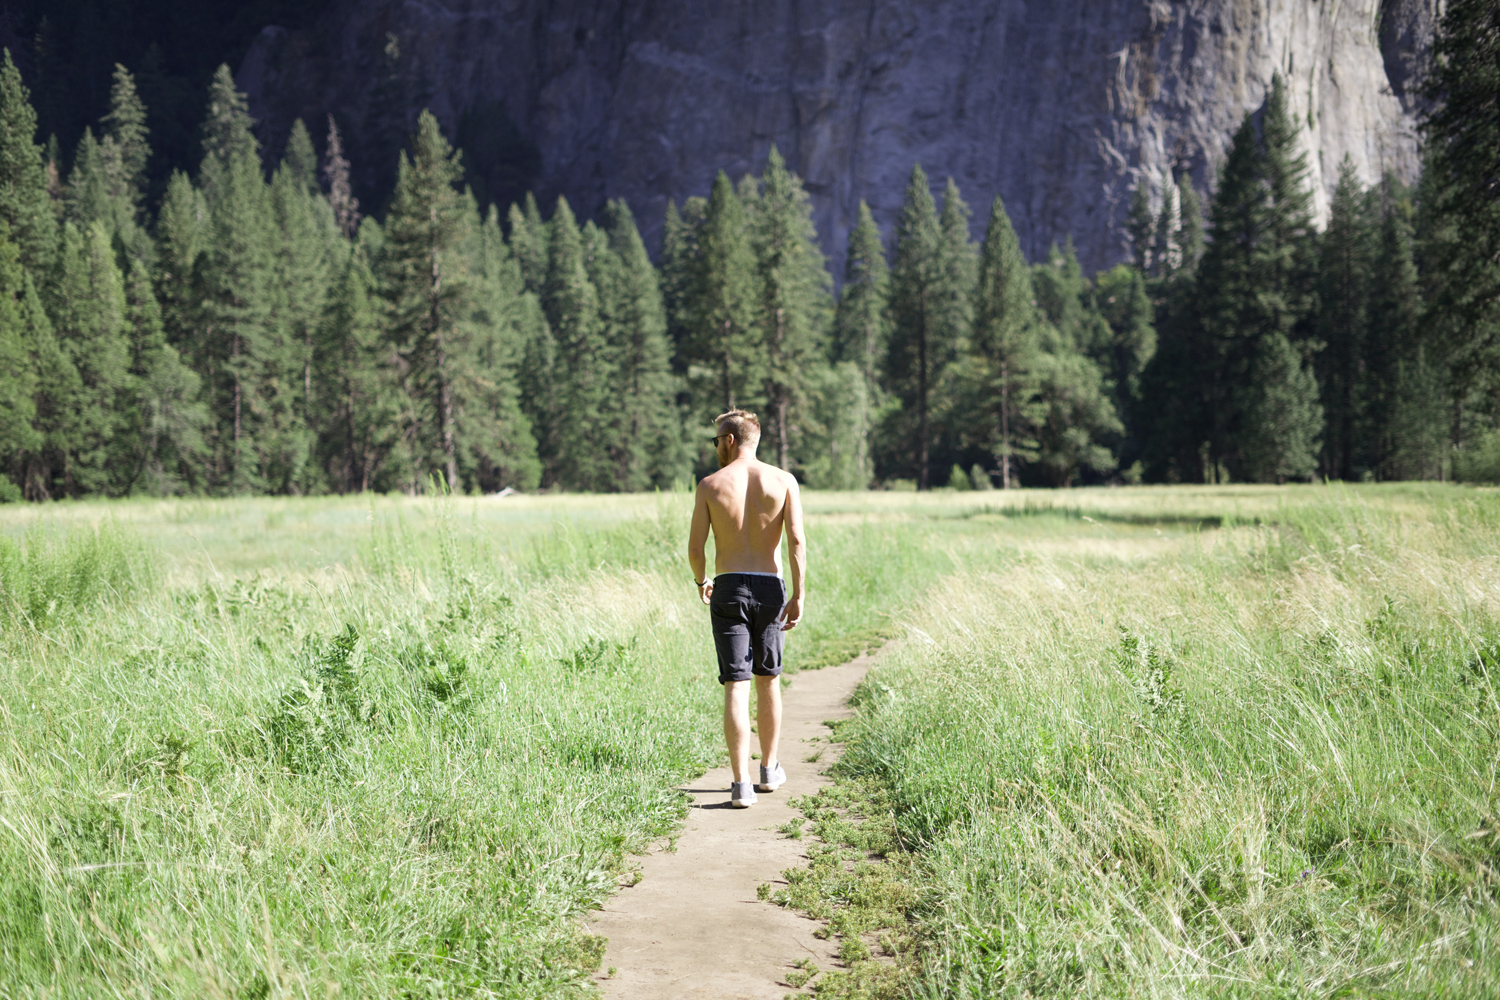 10yosemite-summer-travel-style-men